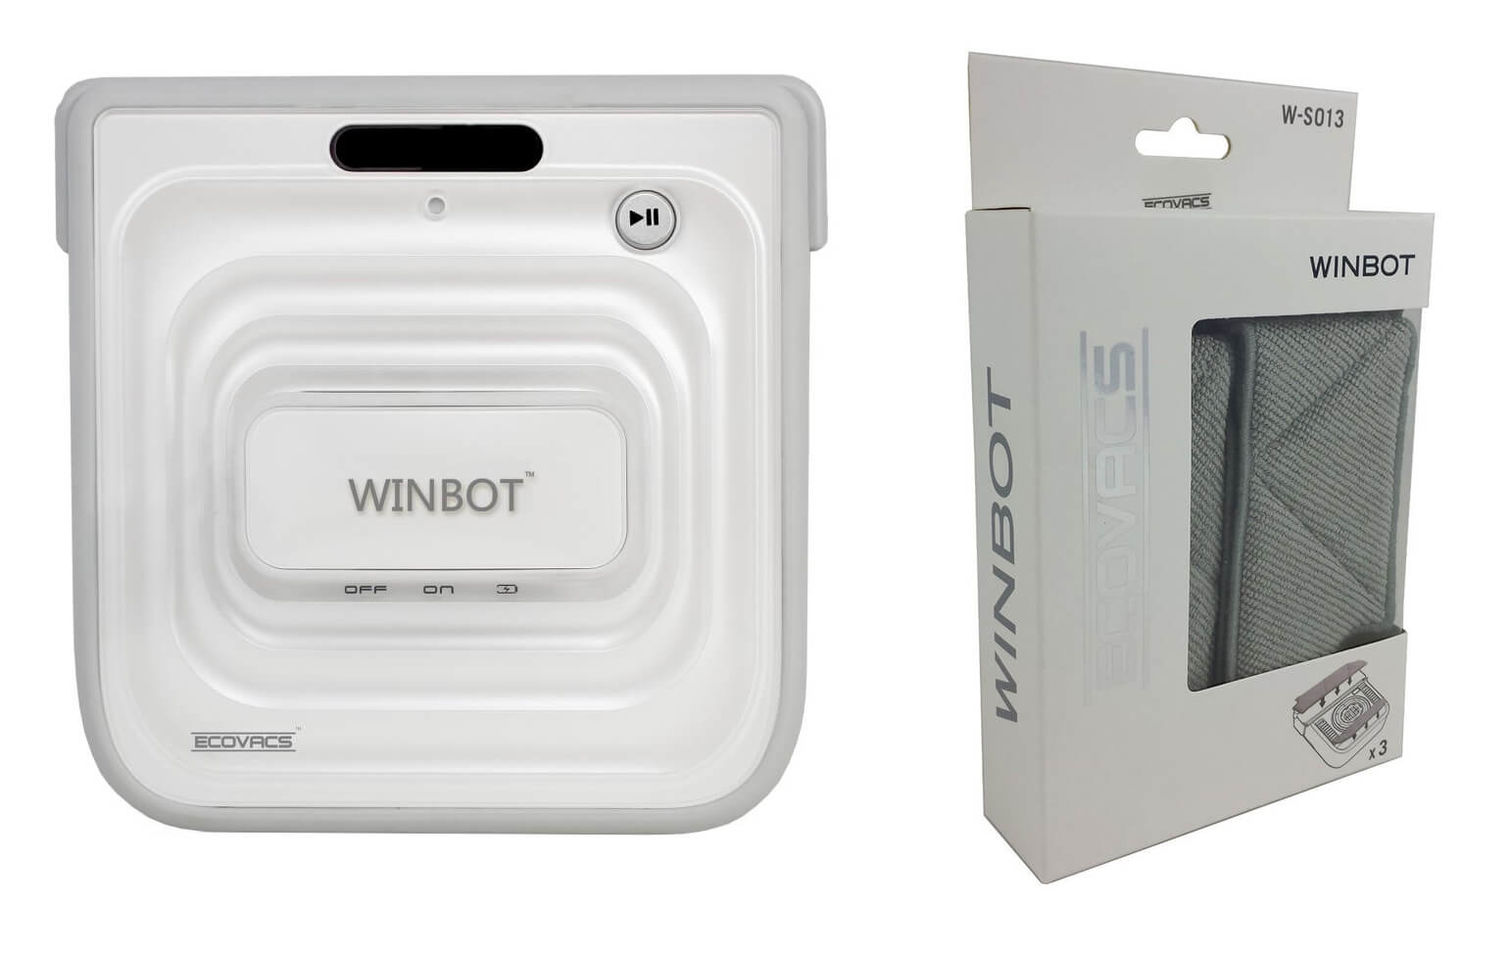 ecovacs winbot w730 window cleaning robot incl. 3- cleaning pads